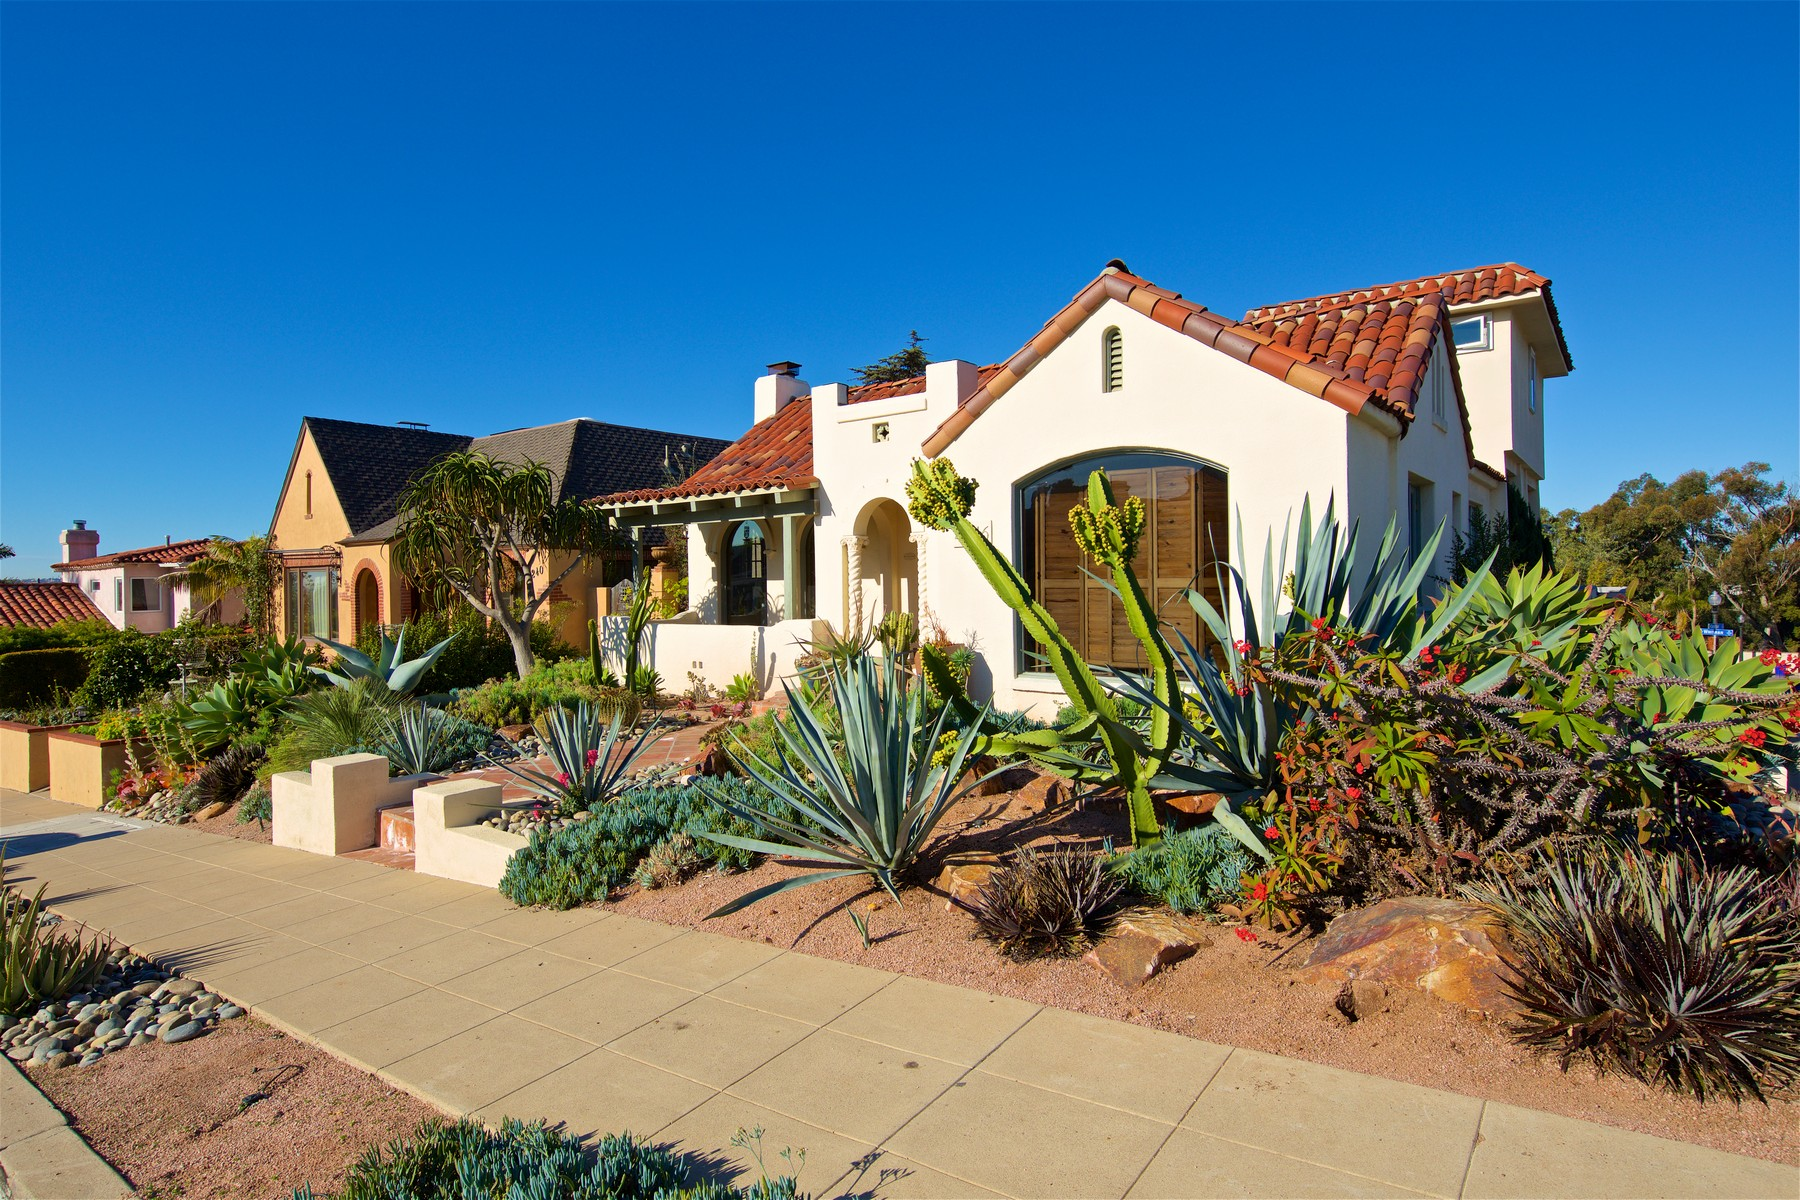 Single Family Home for Sale at 4246 Trias Street Mission Hills, San Diego, California, 92103 United States